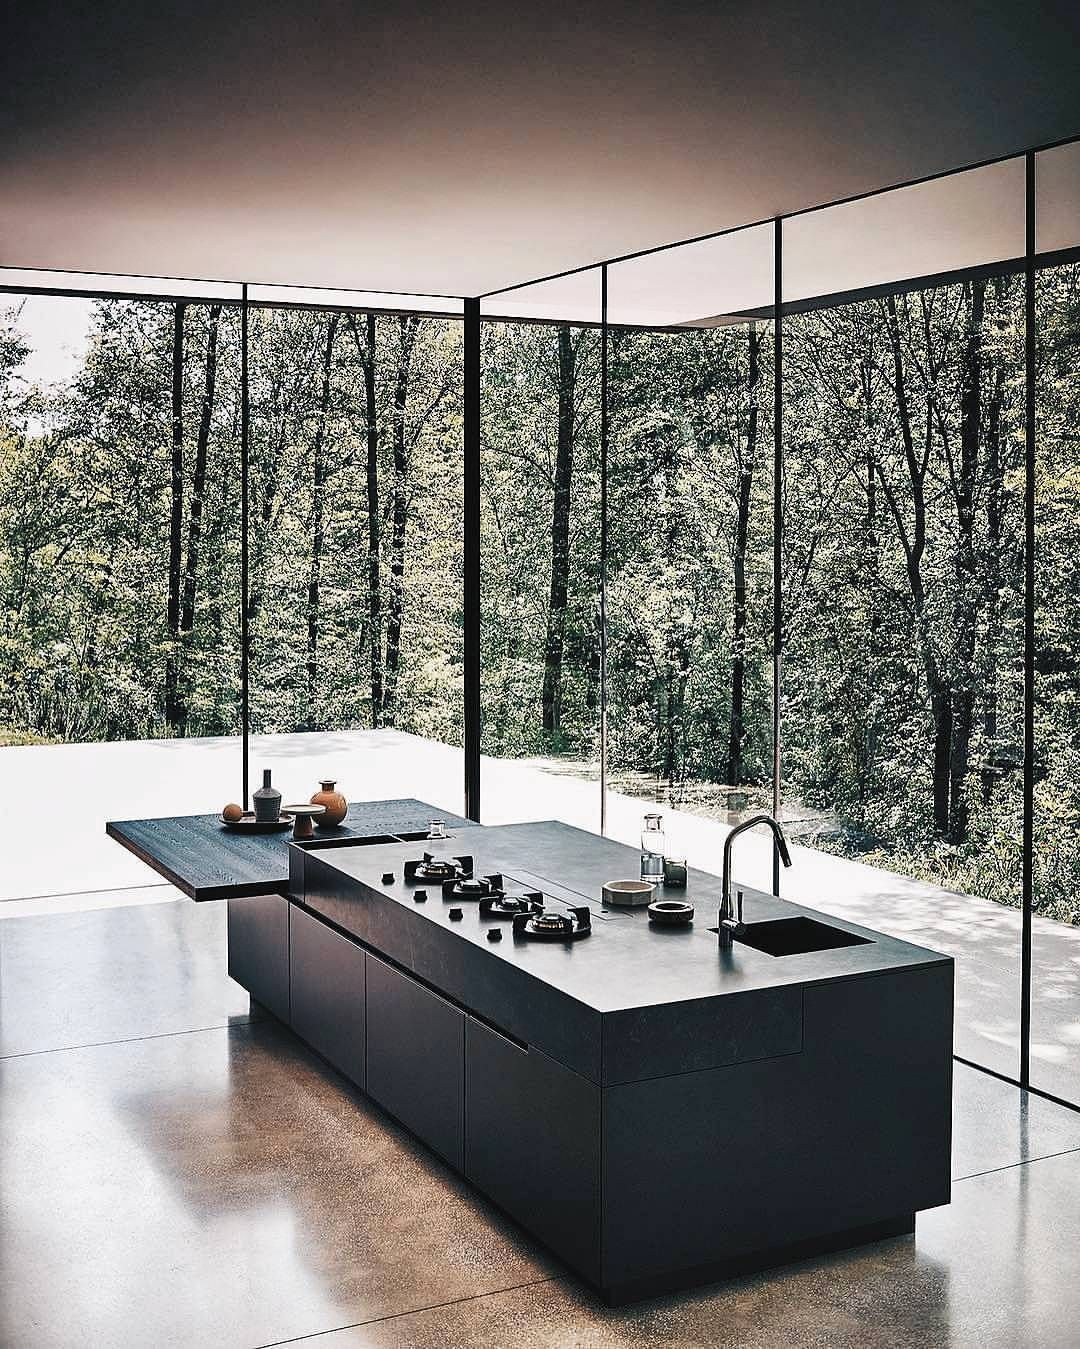 minimal black kitchen island bench surrounded by tall windows with